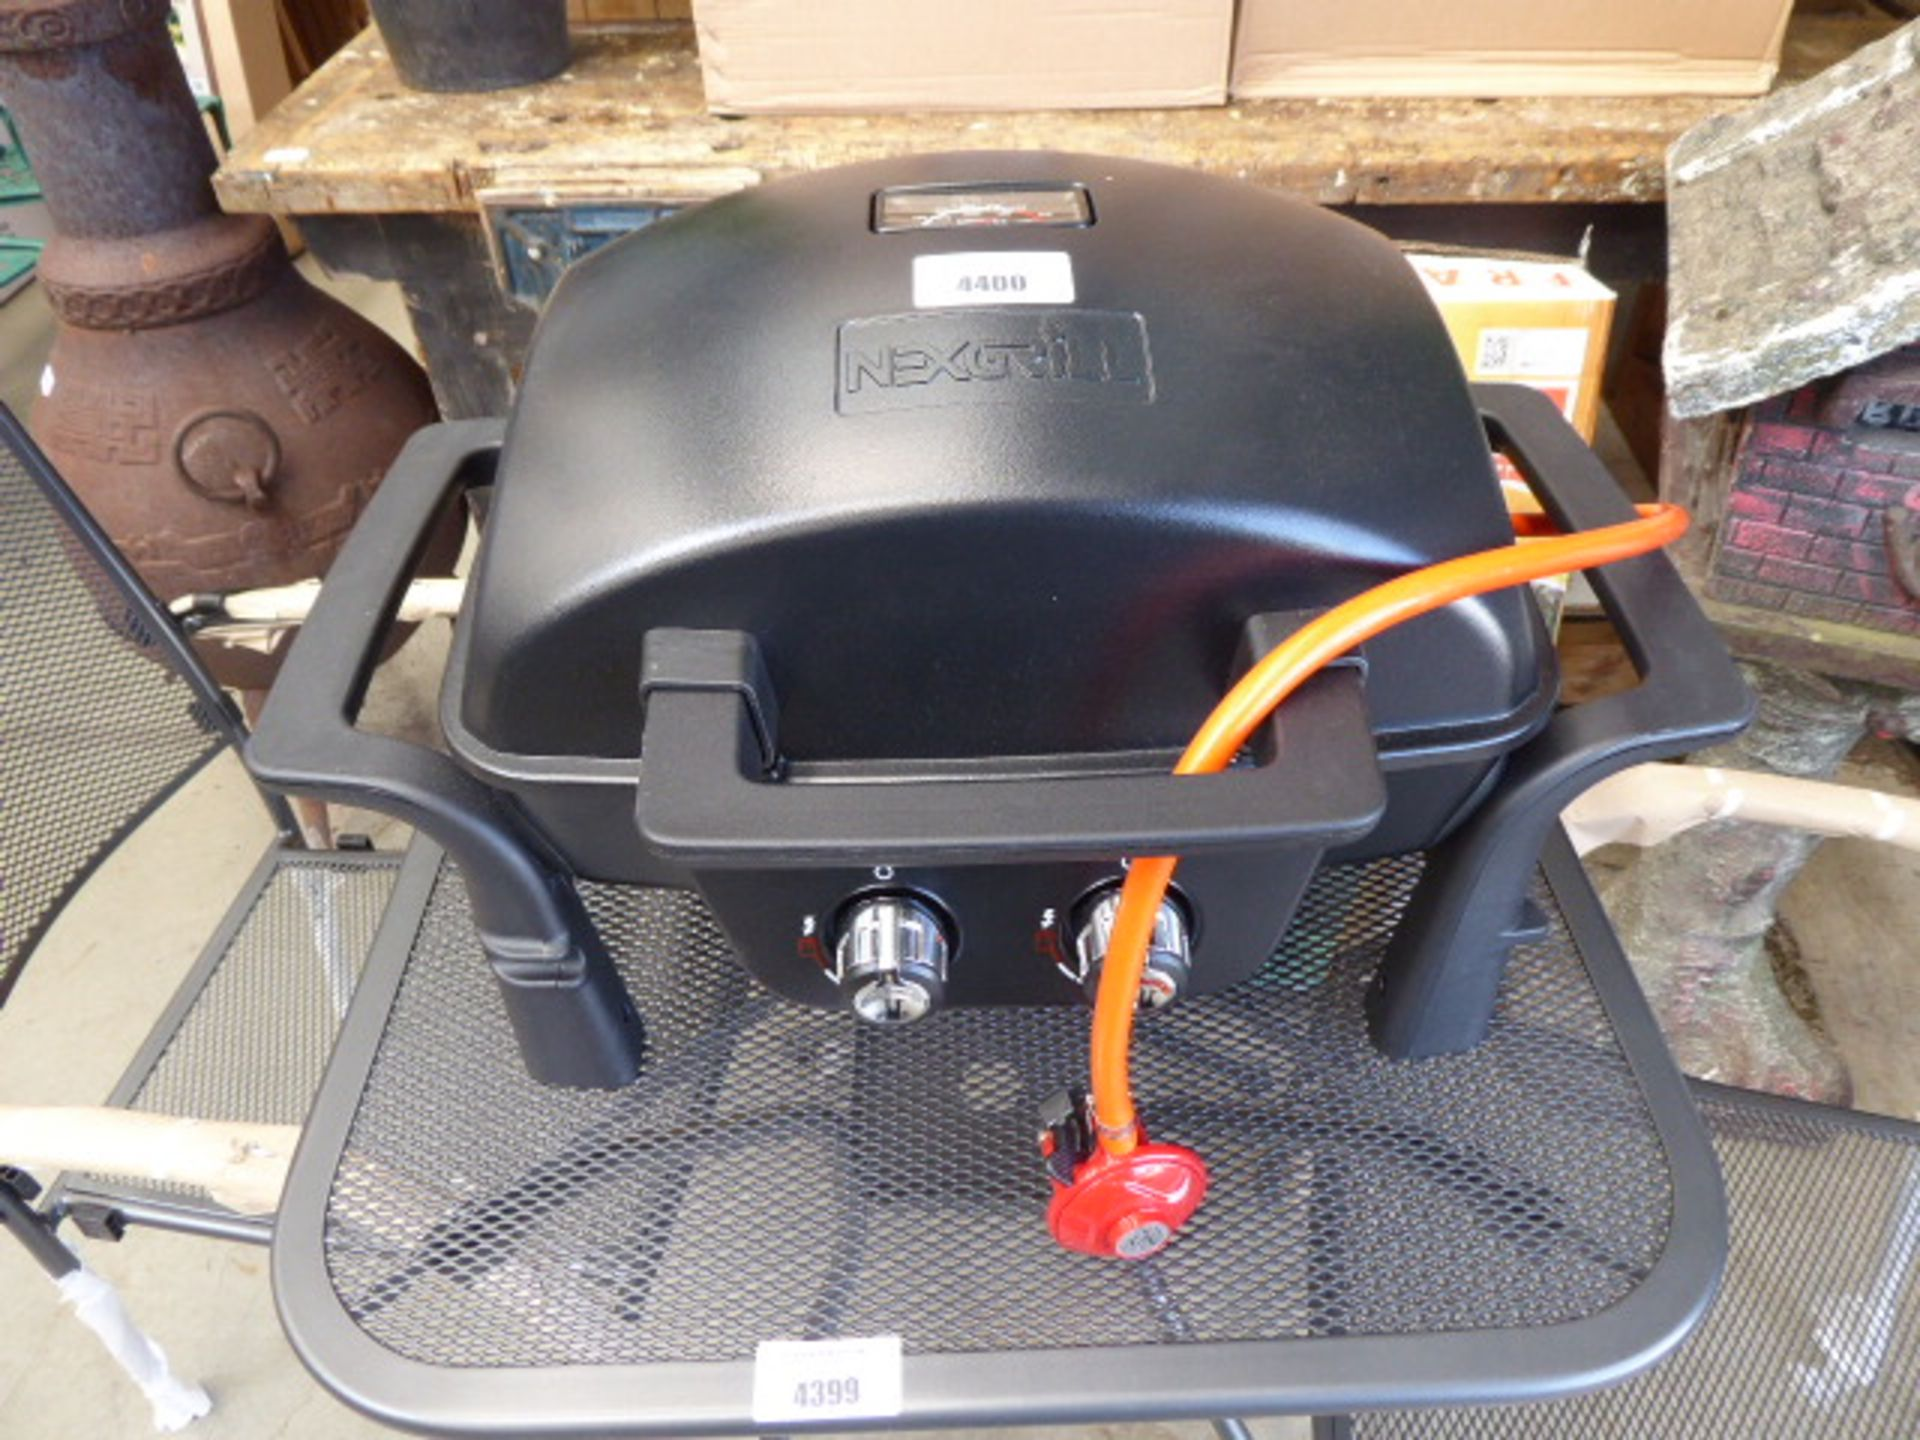 Lot 4400 - Next grill 2 burner gass BBQ